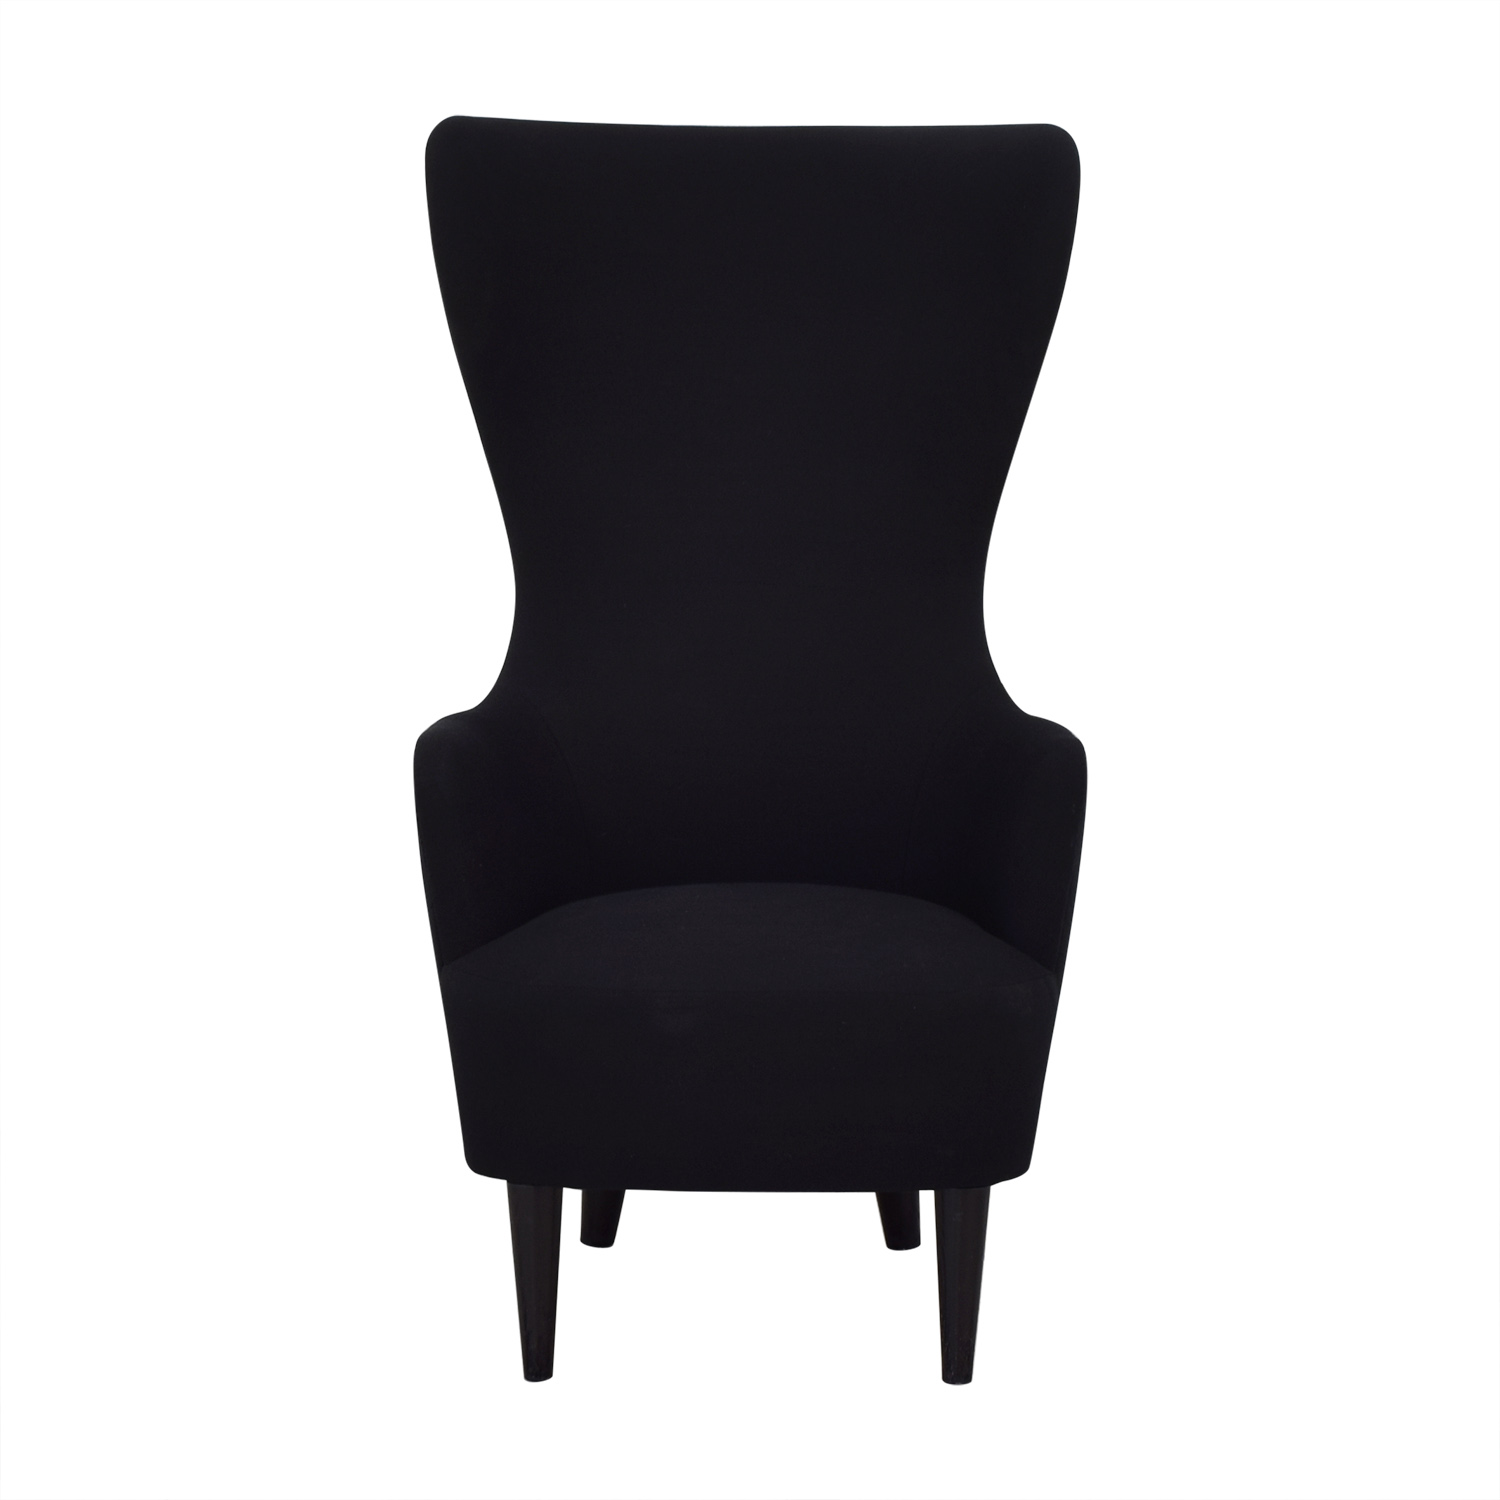 Tom Dixon Tom Dixon Wingback Black Leg Hallingdal 65 Chair Accent Chairs